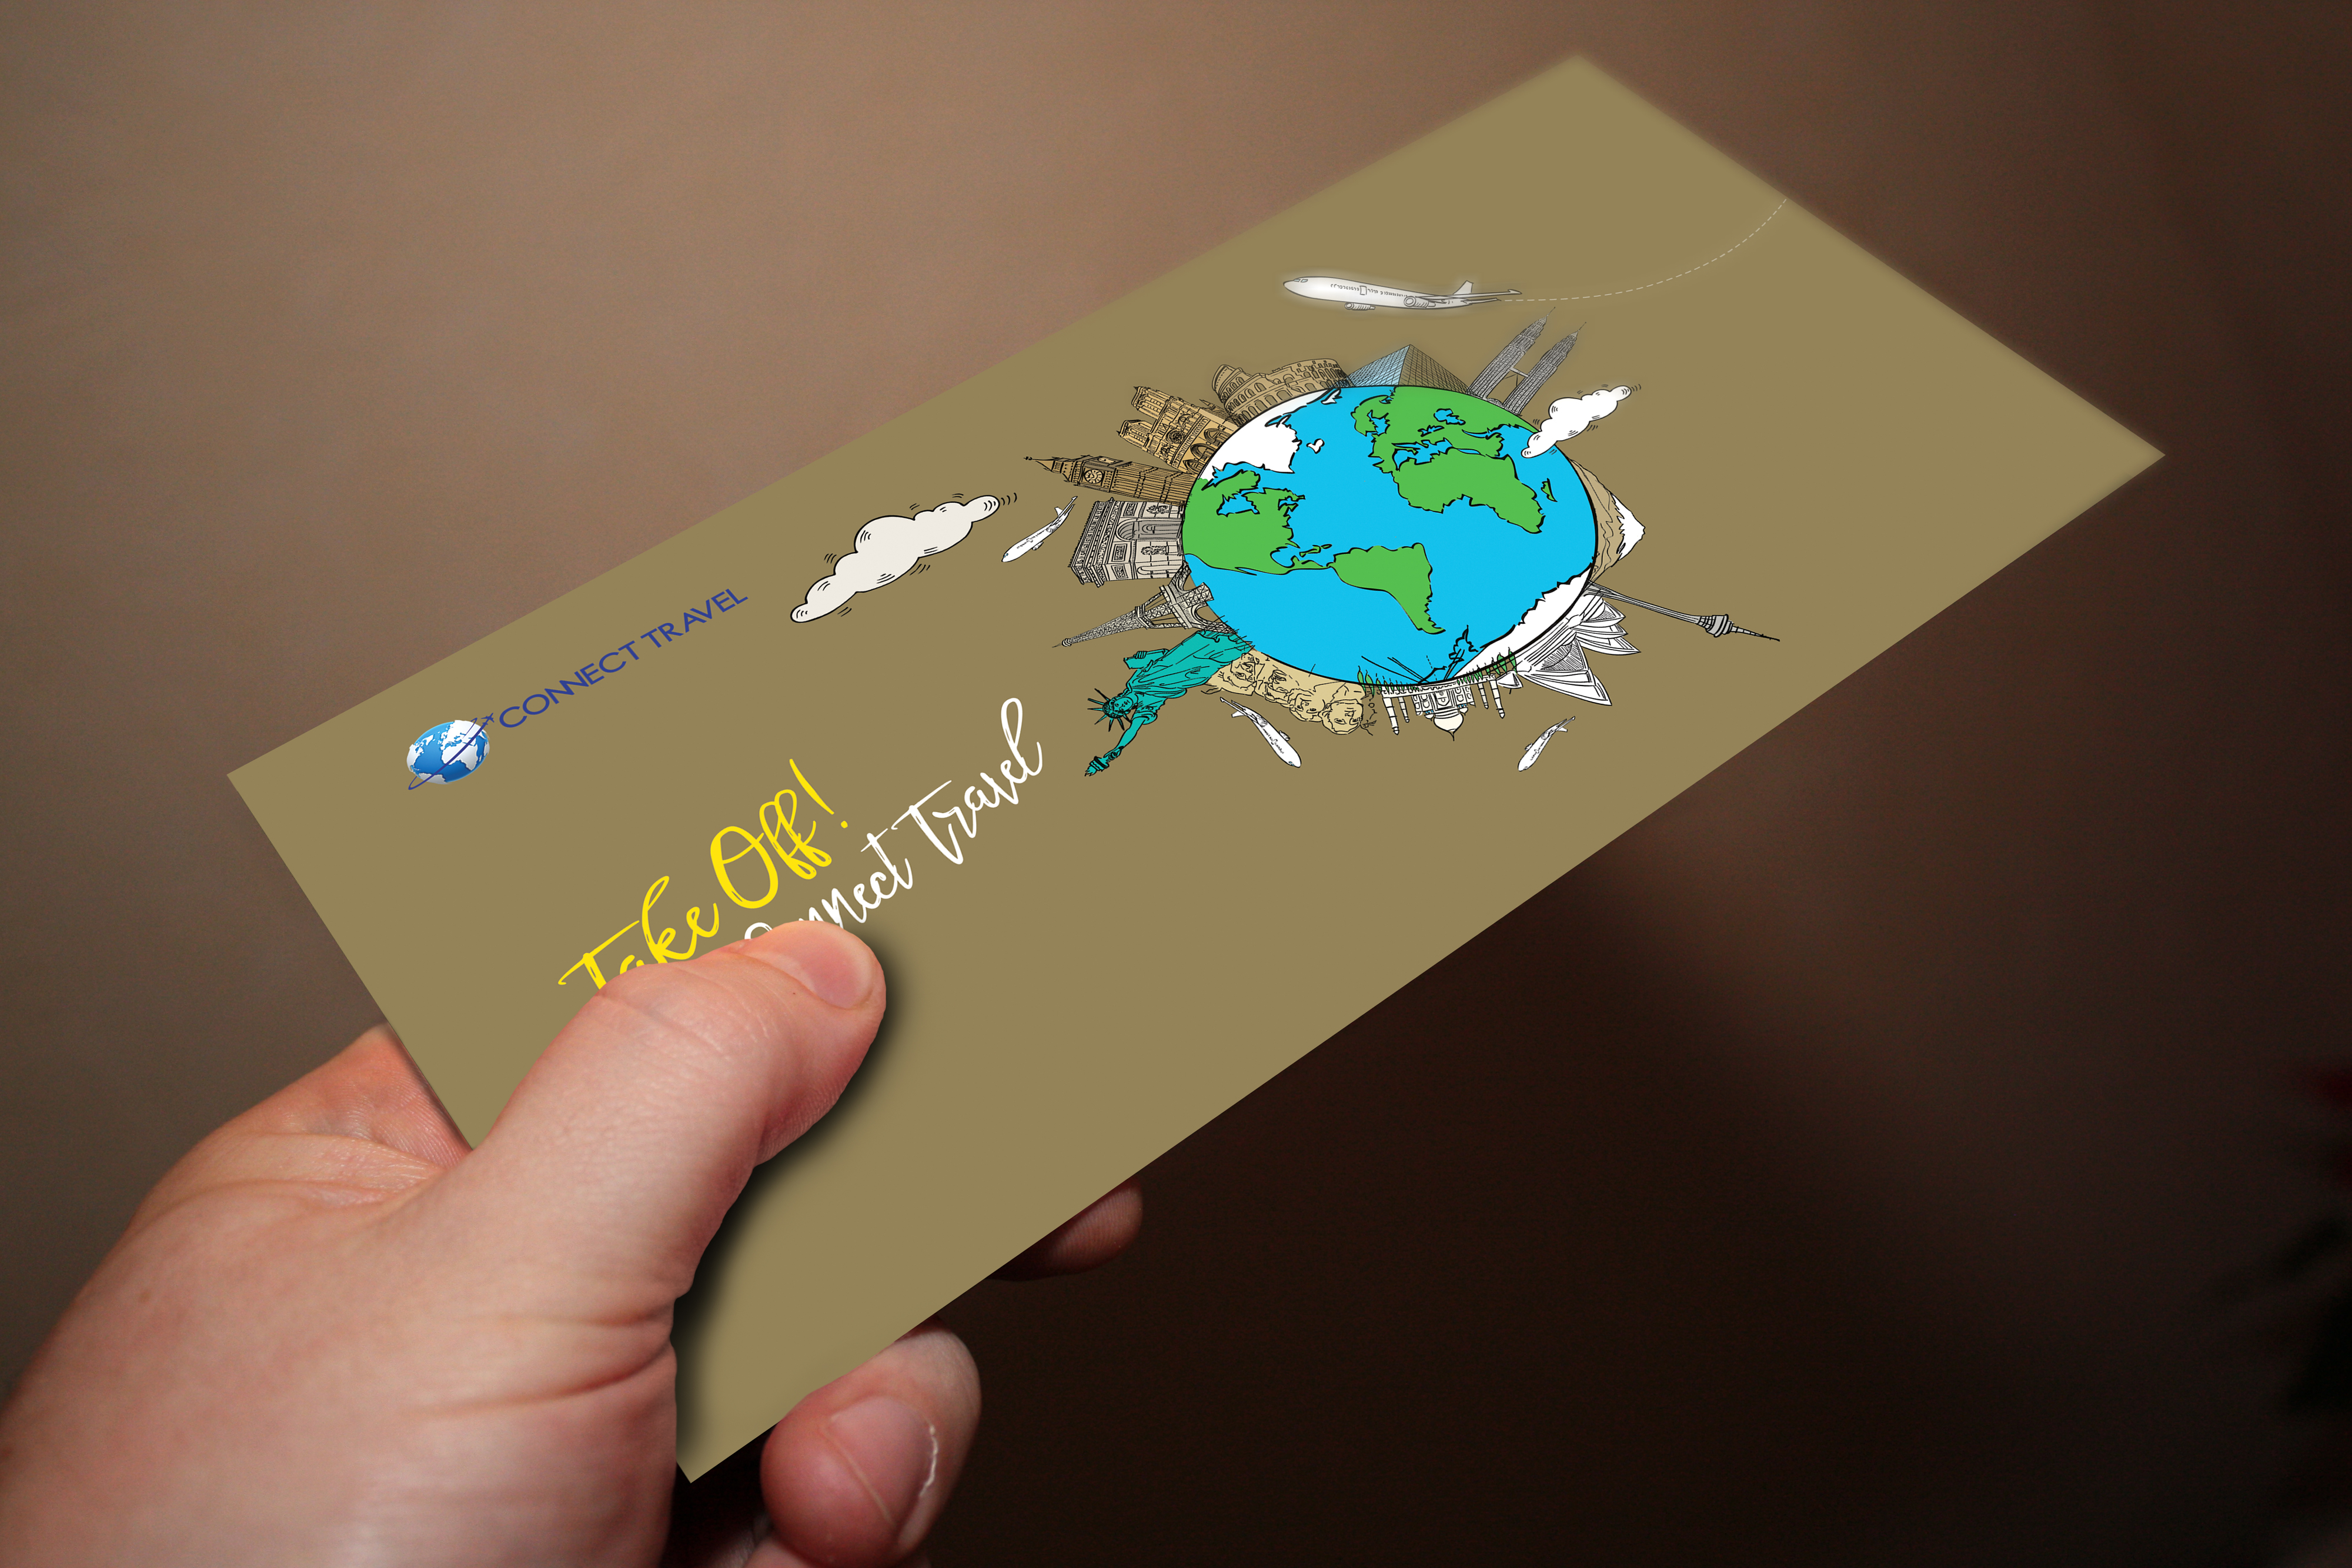 Connect Travel branding material